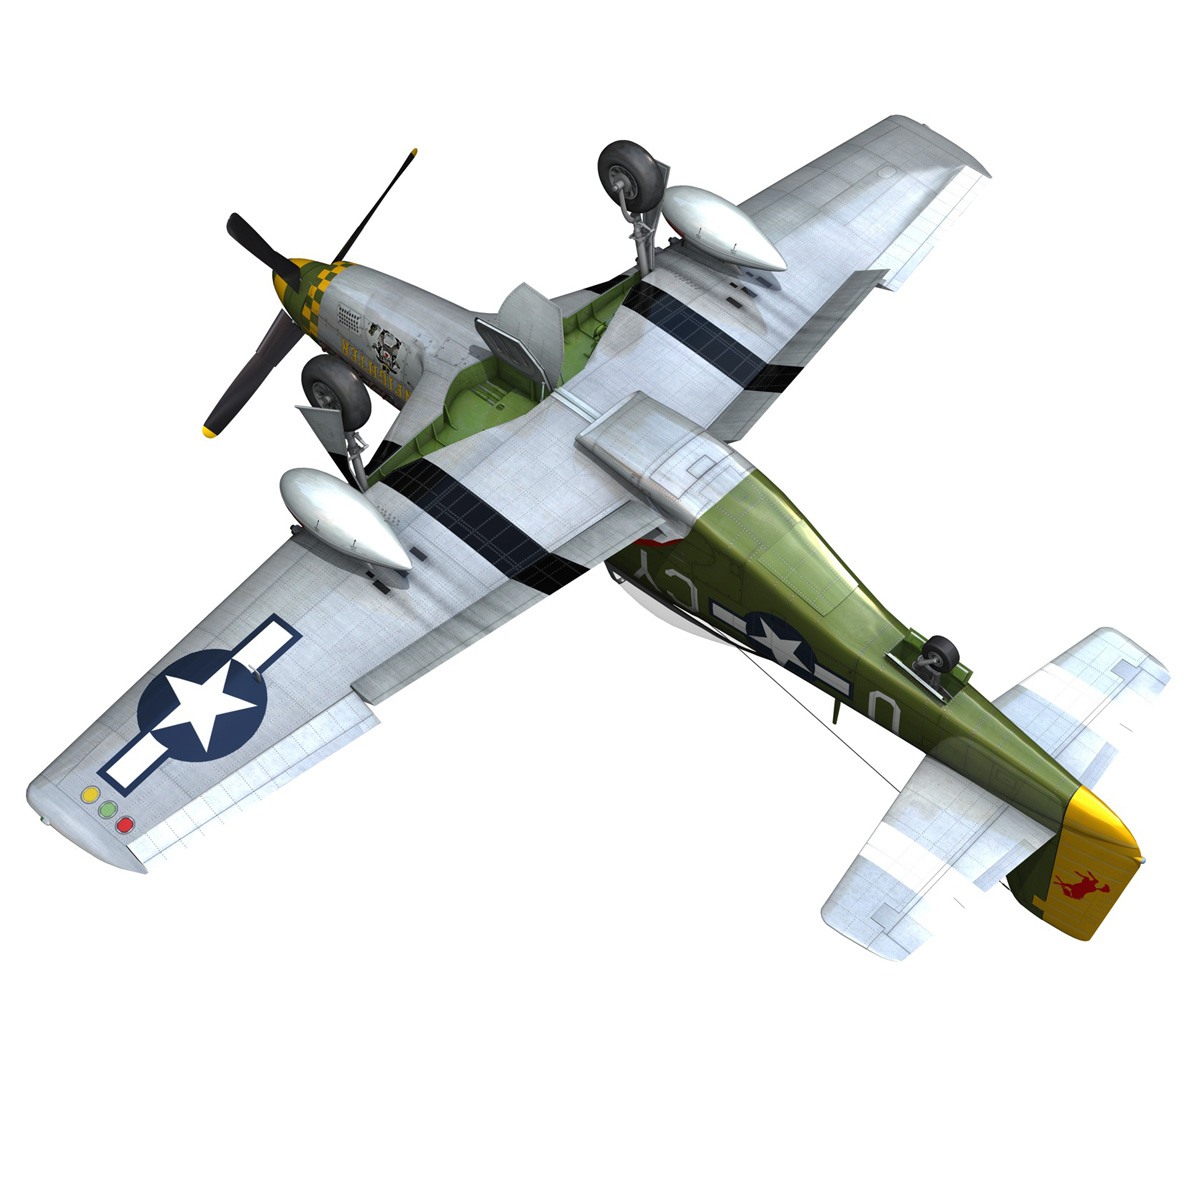 north american p-51d mustang – gunfighter 3d model fbx c4d lwo obj 269585